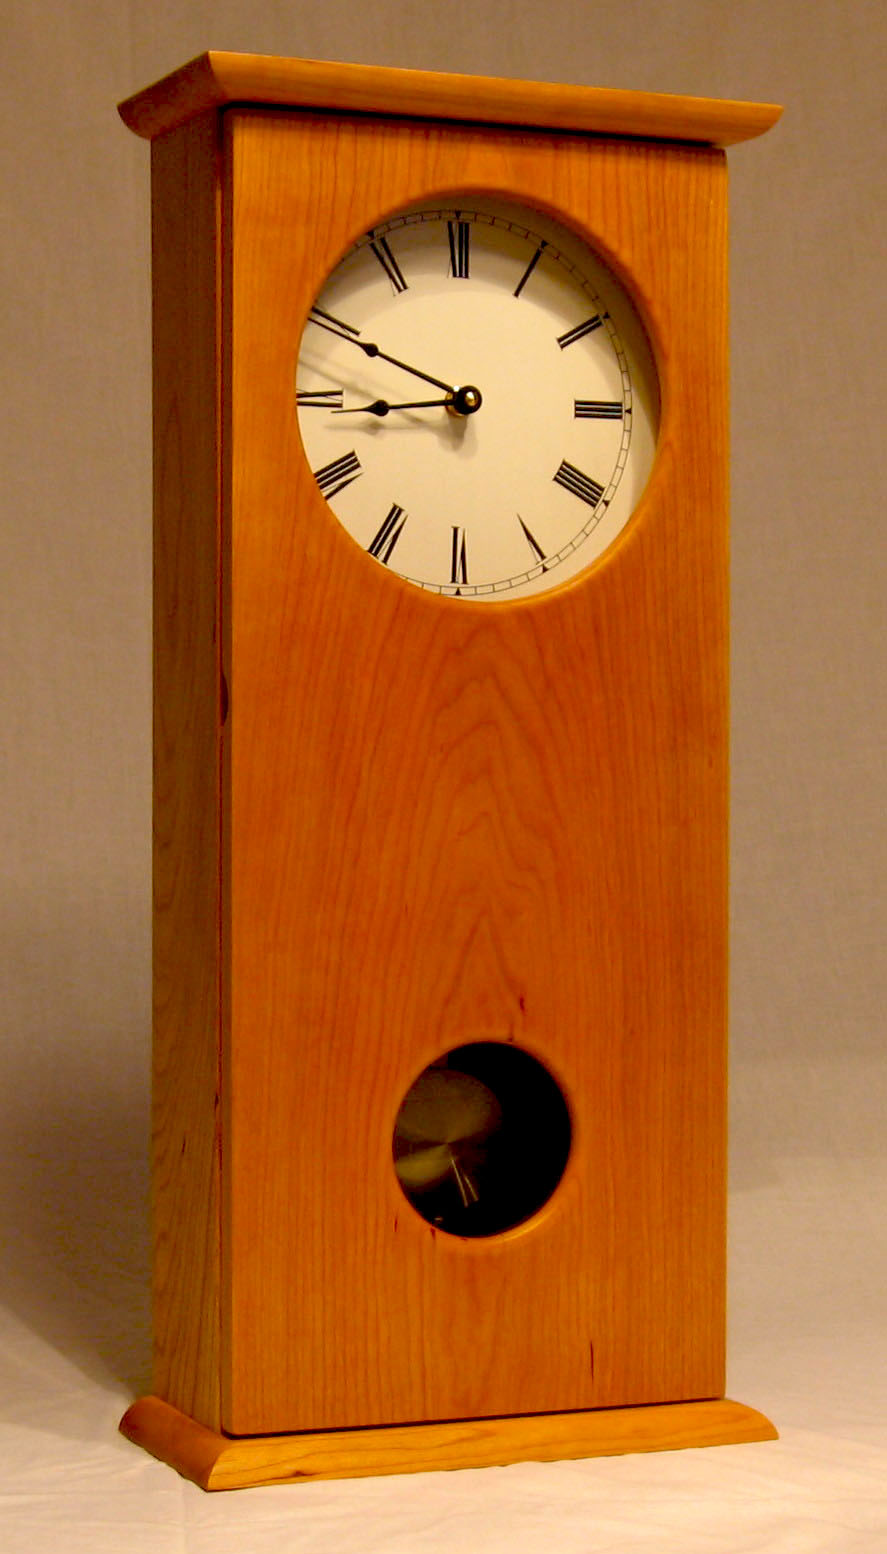 Custom Woodworking Frank Vellone : WallClock20002a from frankvellone.com size 887 x 1554 jpeg 151kB